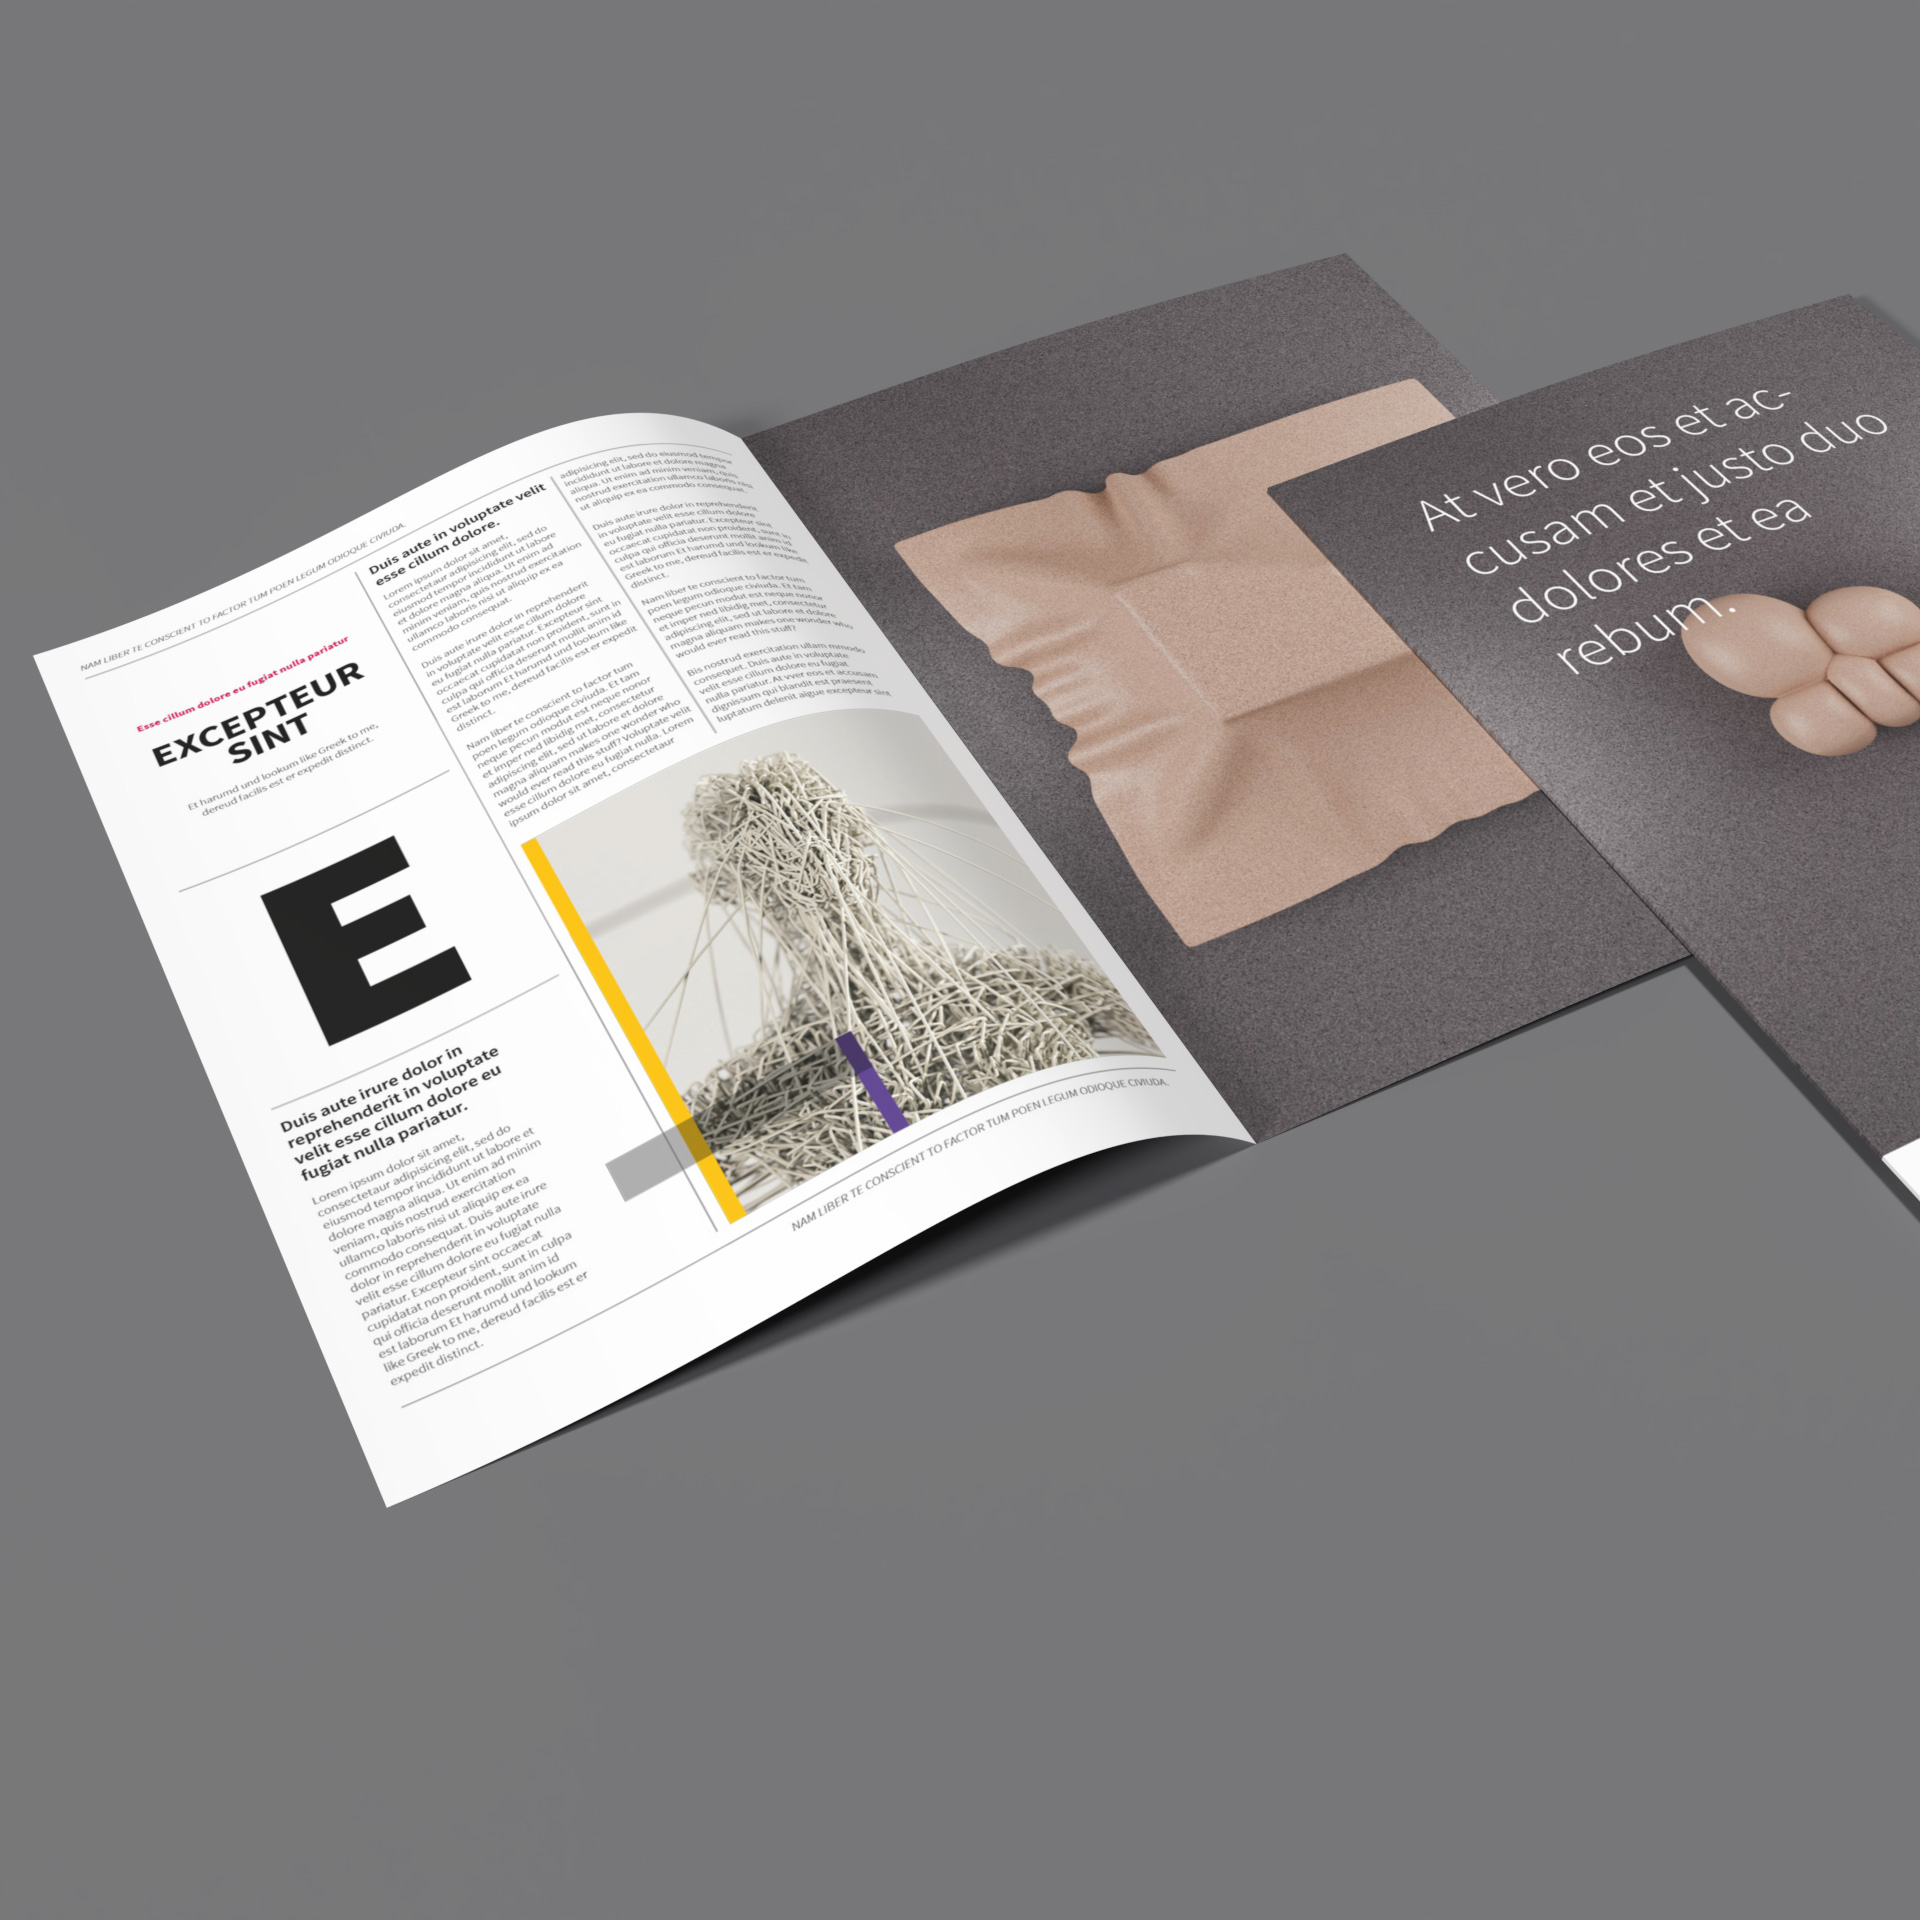 professional magazine layout, InDesign template fully editable and customizable